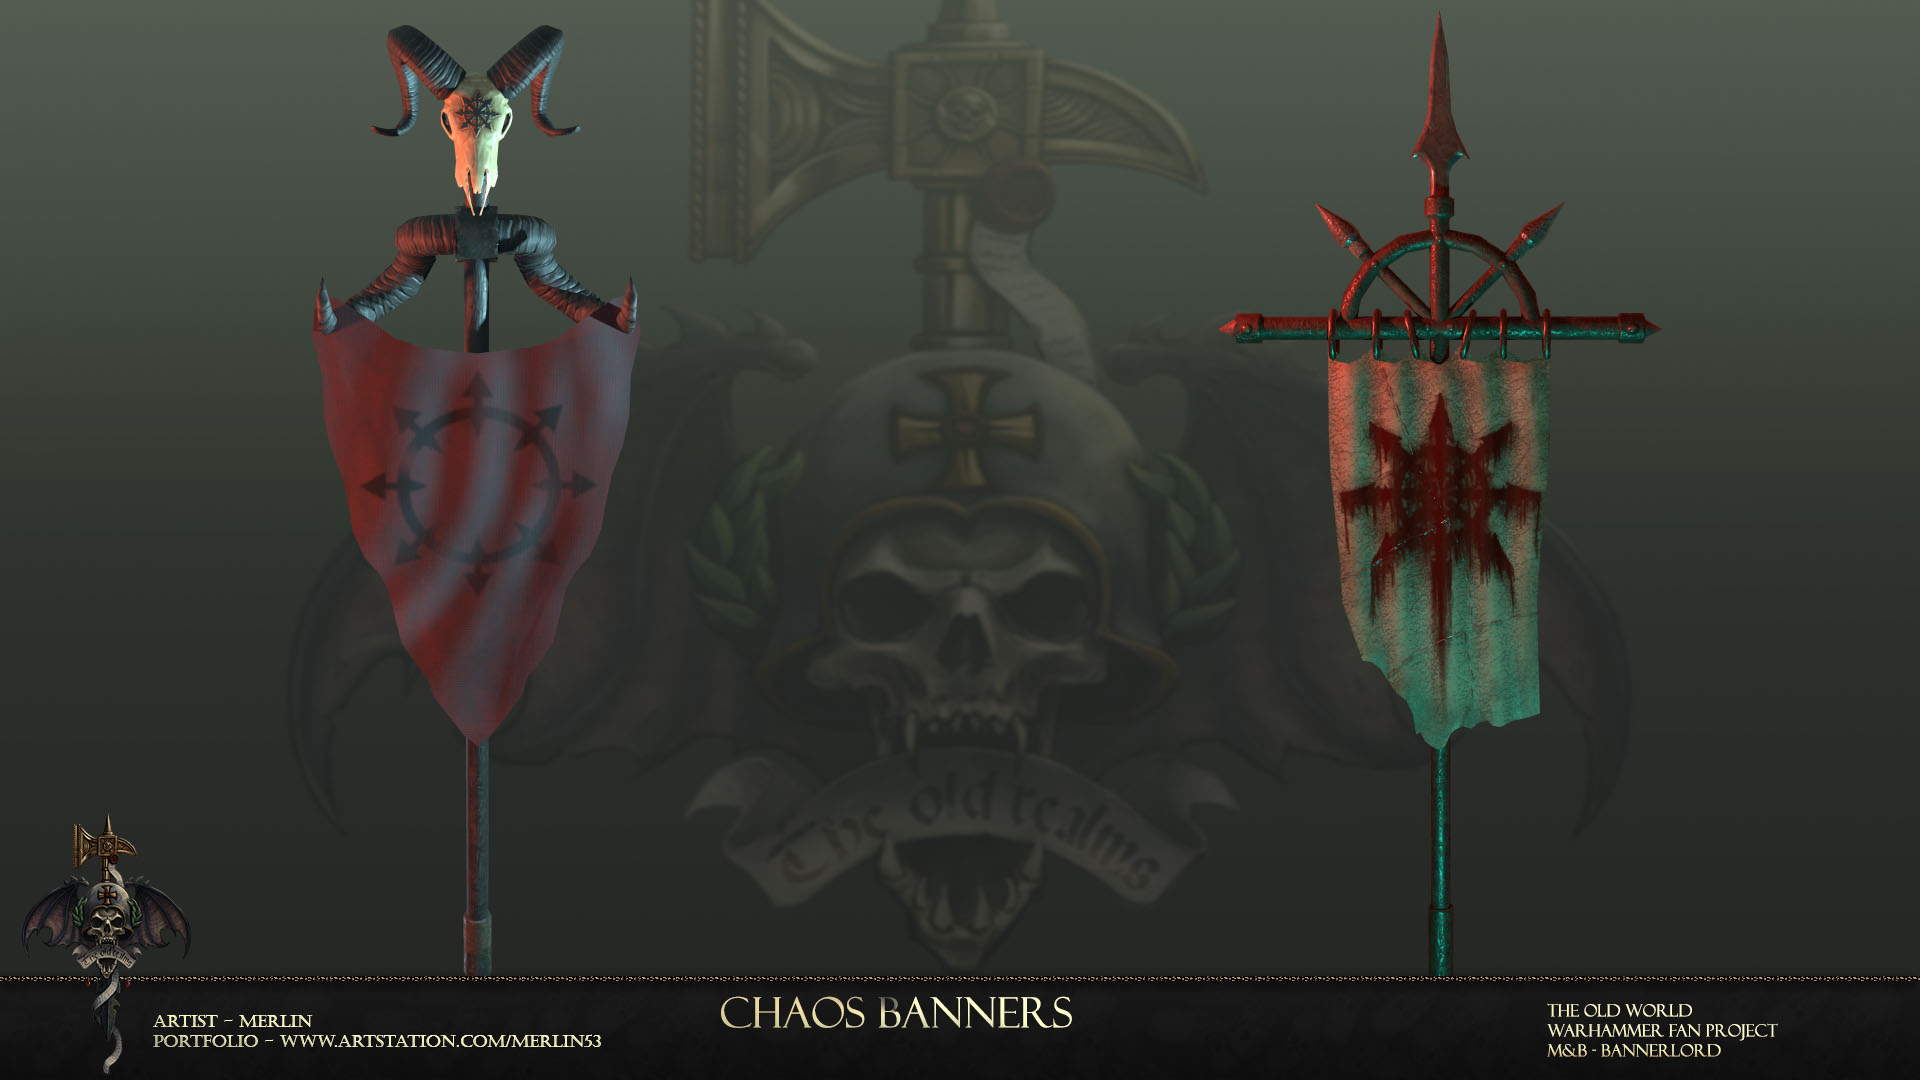 Chaos banners 2